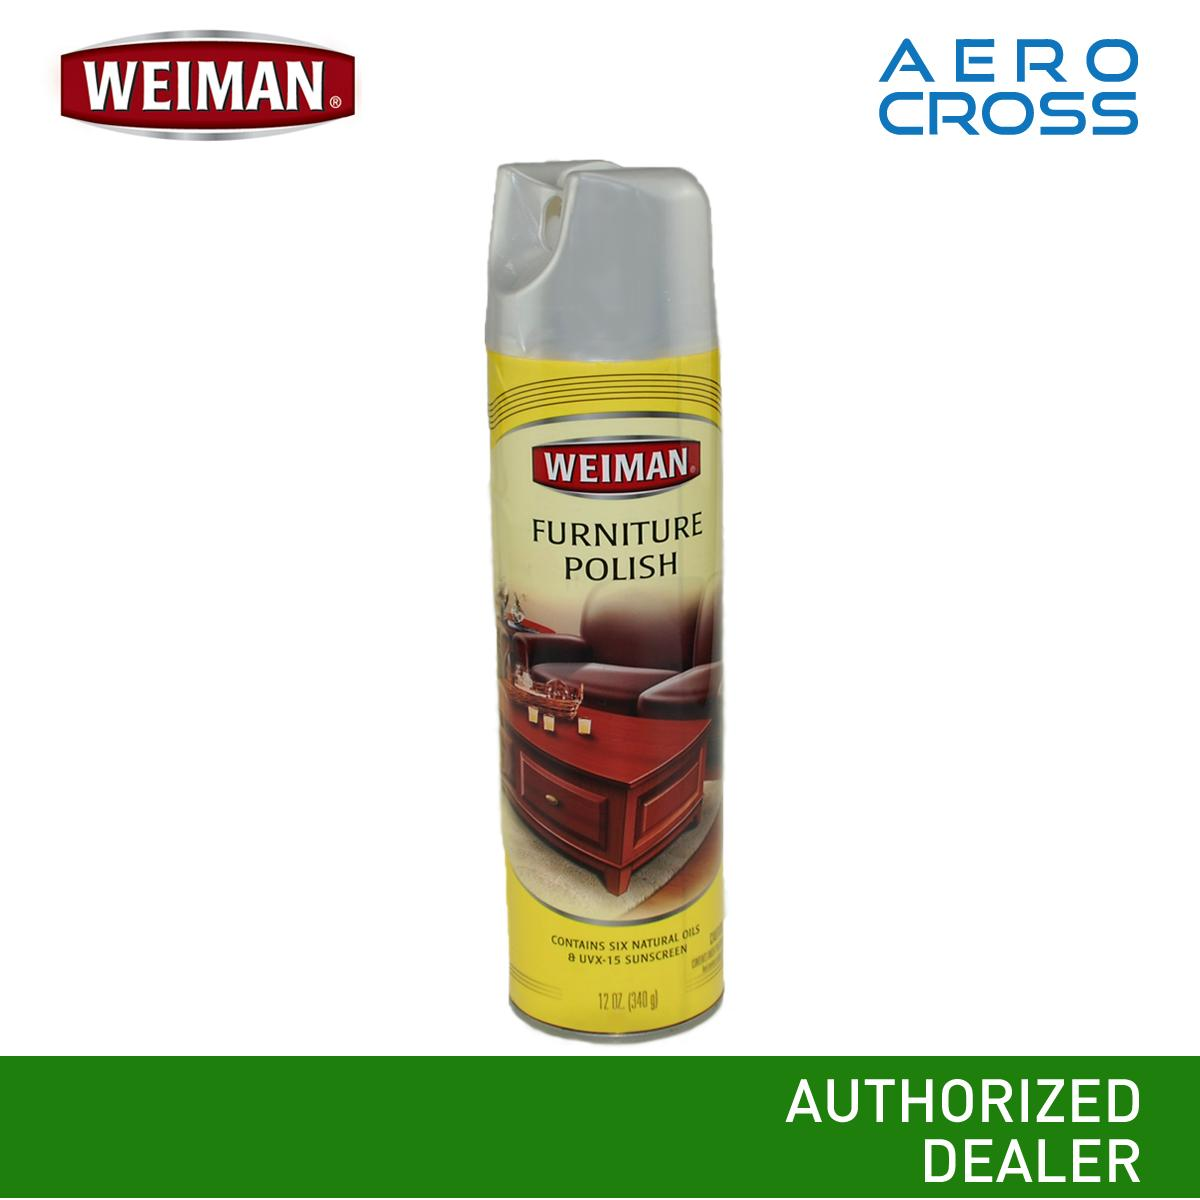 Ac Weiman Furniture Polish By Aerocross Phils.